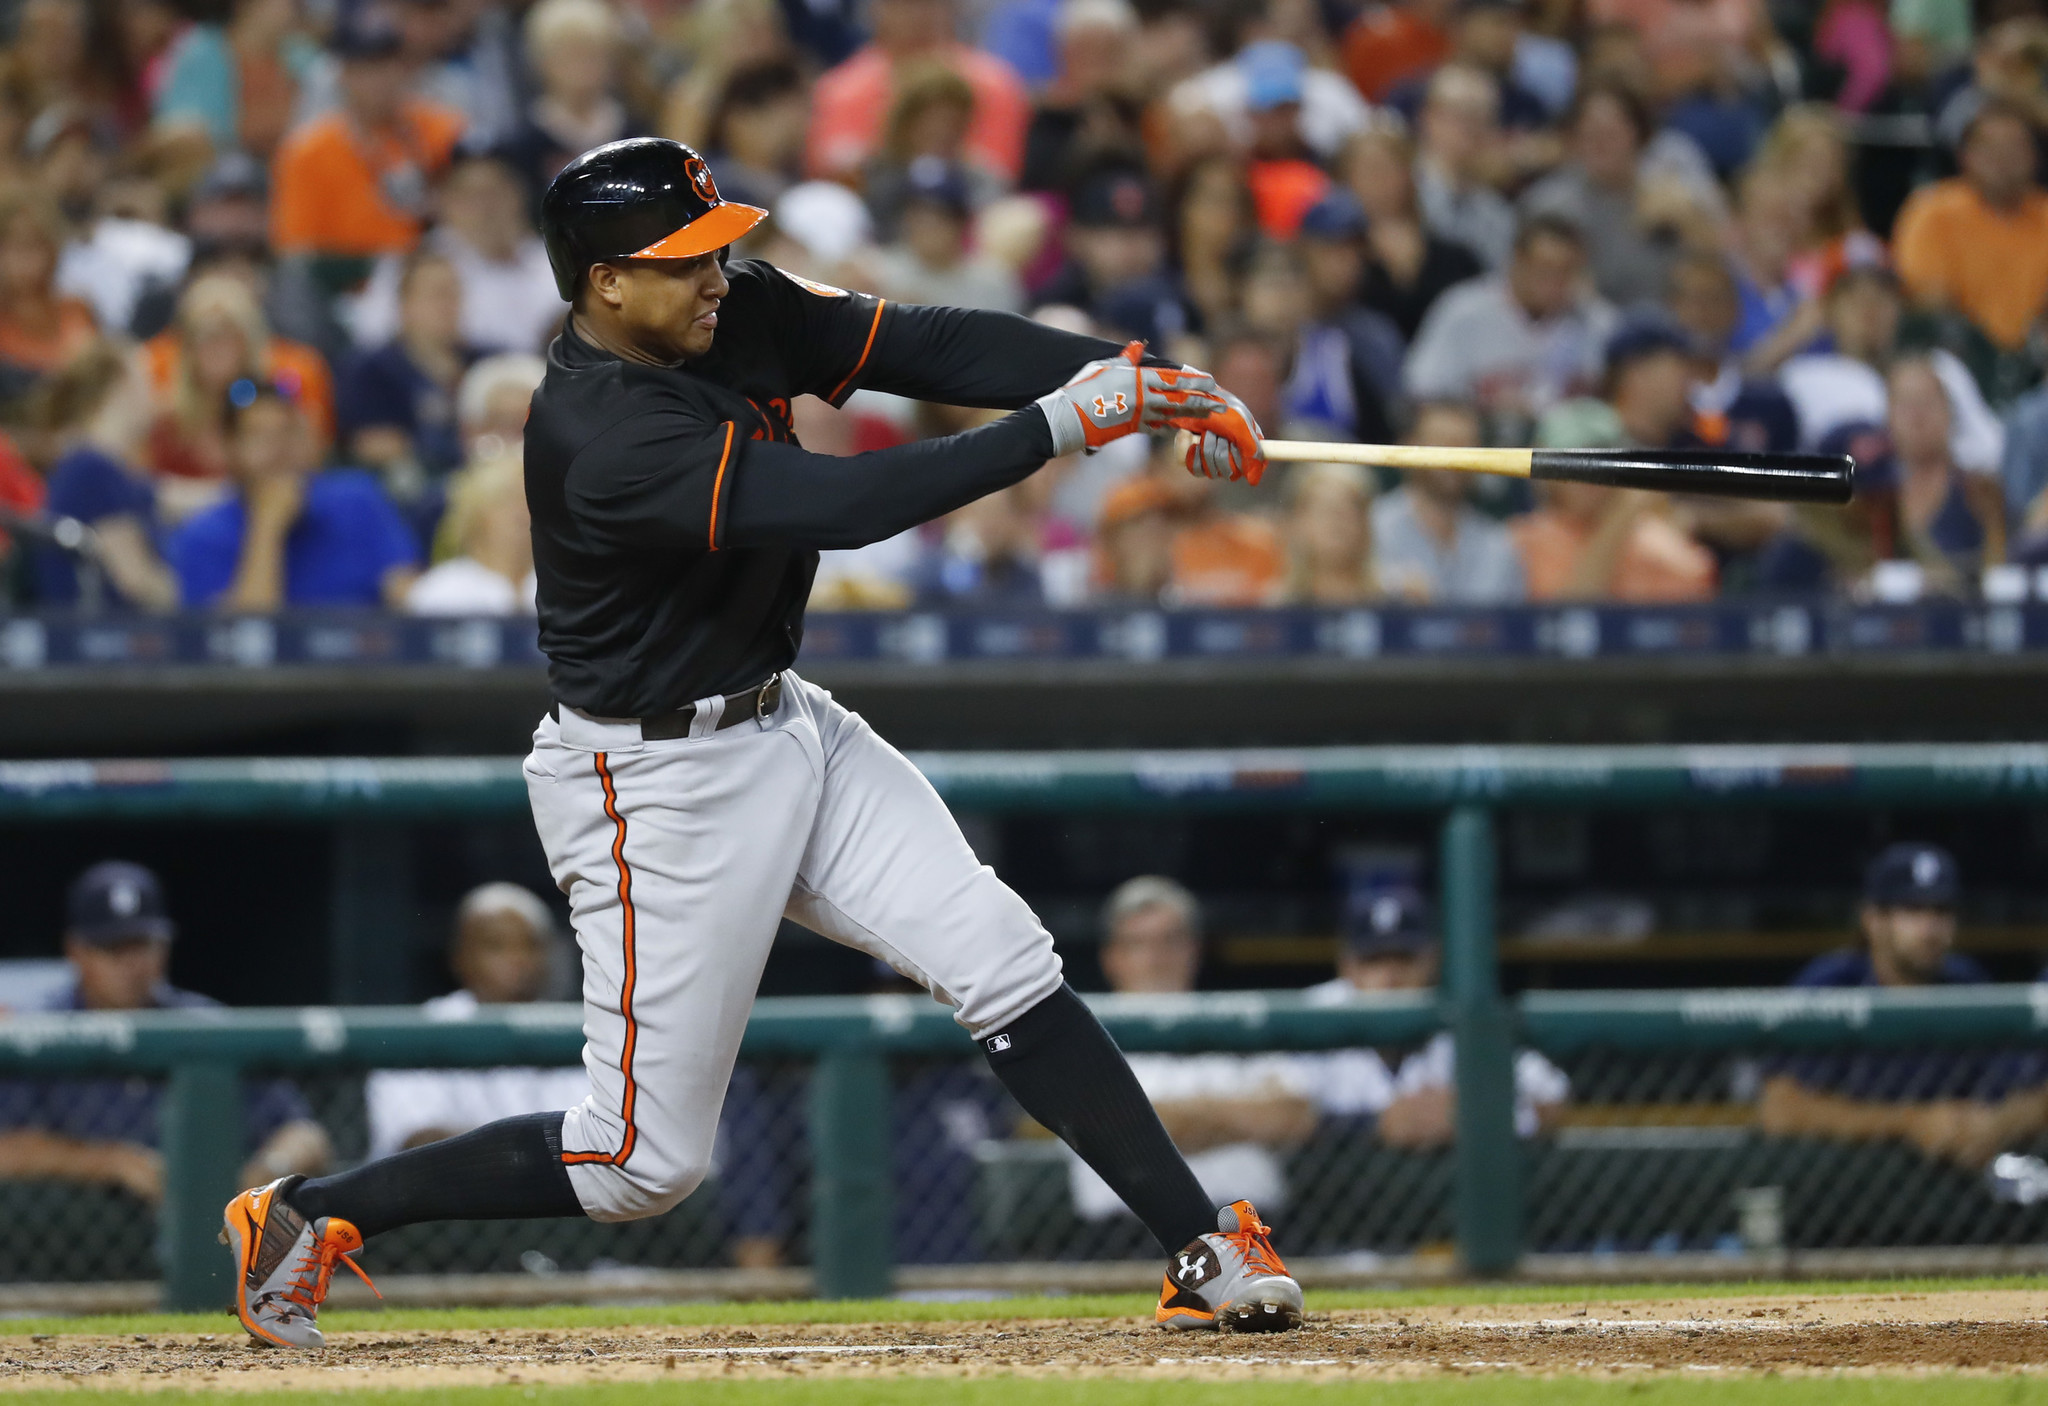 Bal-orioles-offseason-positional-roundup-second-base-20161011